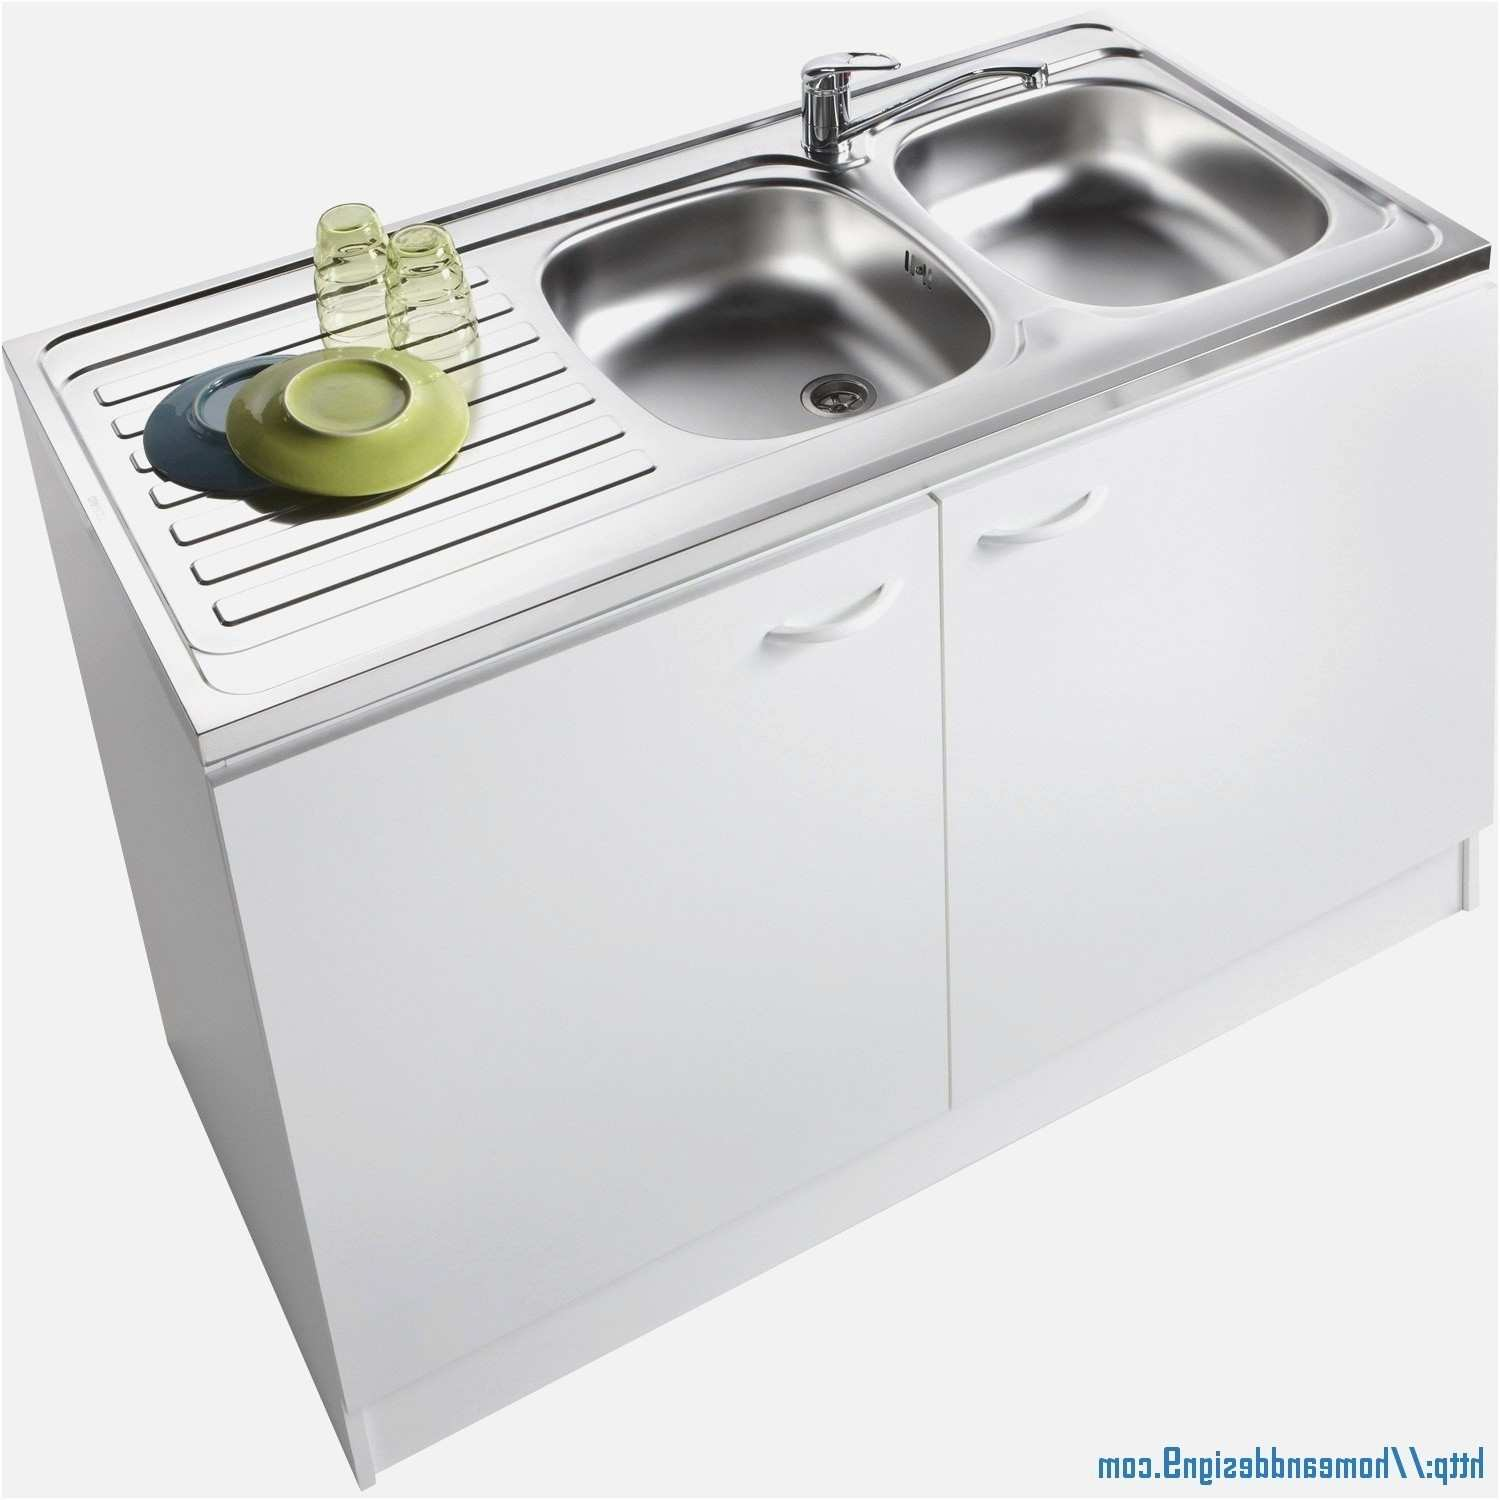 Evier Inox Pas Cher Brico Depot Pearlfection Fr